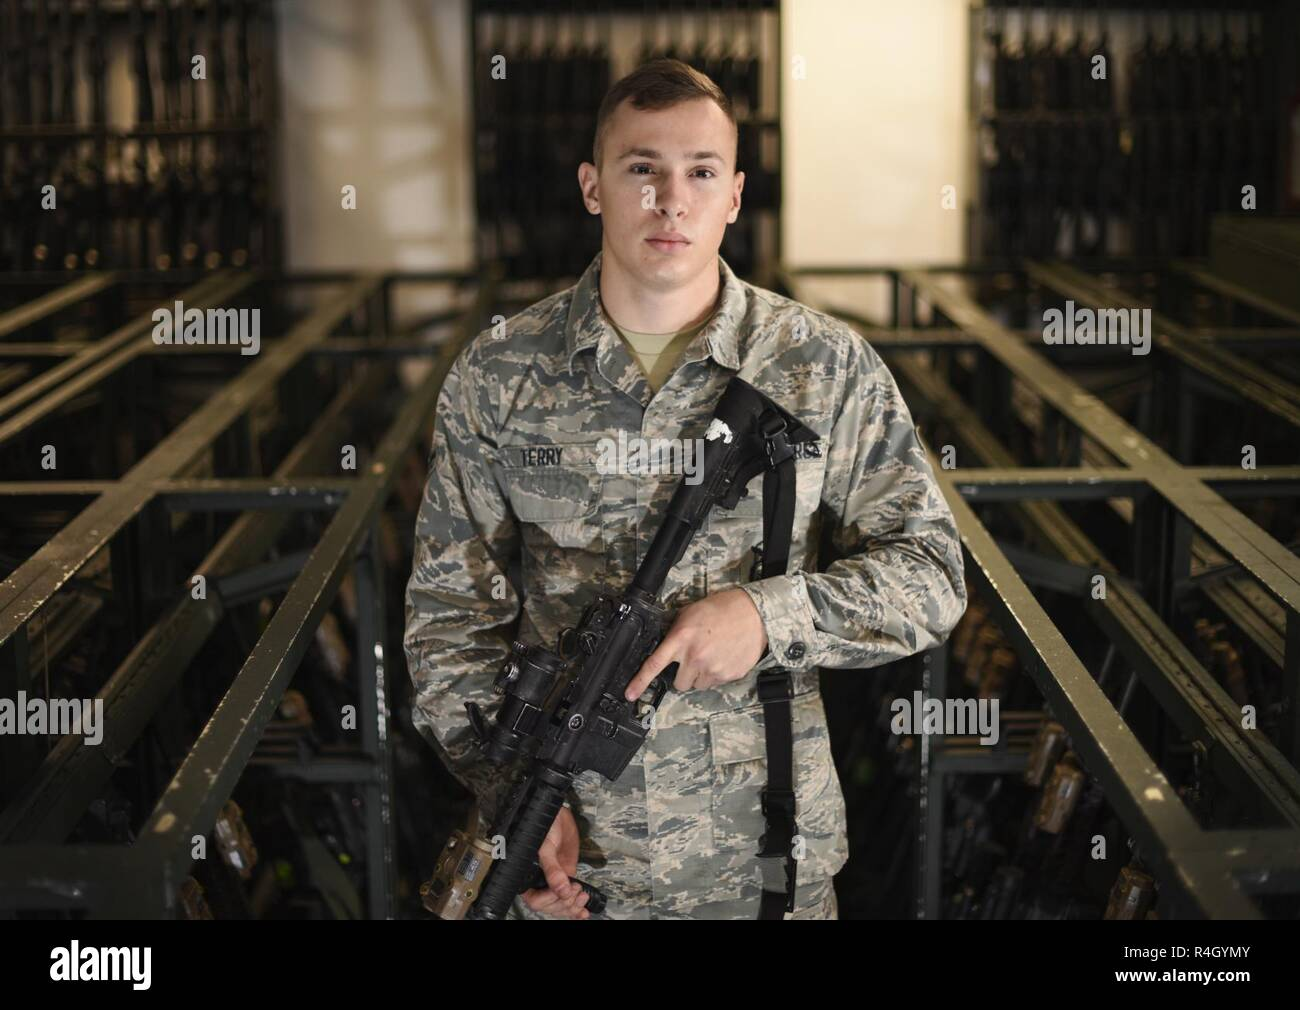 U.S. Air Force Airman 1st Class Nicholas Terry, 100th Security Forces Squadron armorer, poses for a photo at RAF Mildenhall, England, Sept. 25, 2018. Airmen assigned to the armory are responsible for arming and de-arming security forces Airmen during each shift change, as well as ensuring issued weapons are being cleaned properly. Stock Photo